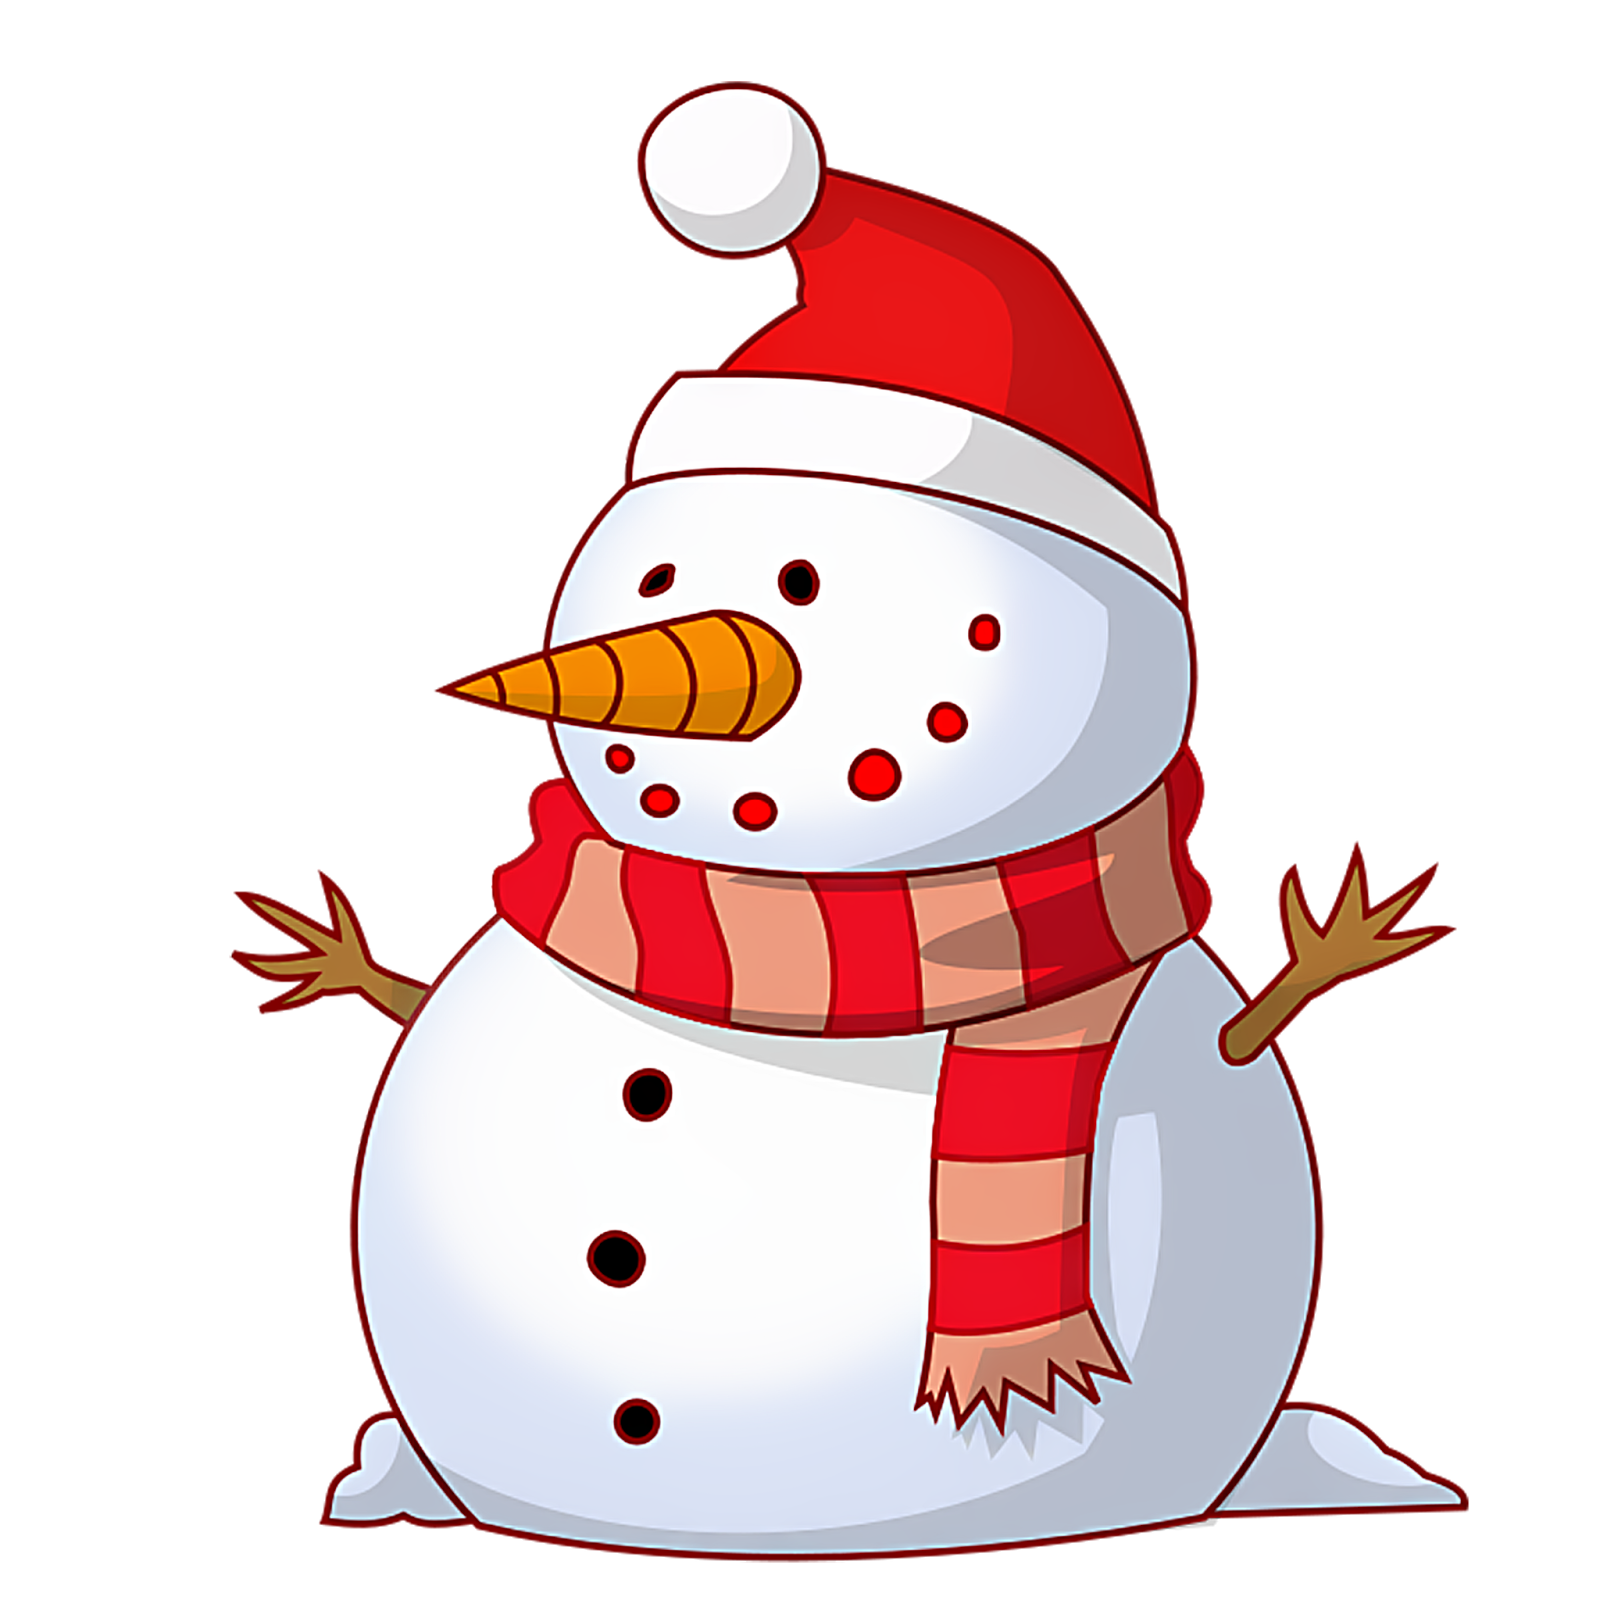 Merry Christmas Snowman Clipart Hd For W-Merry Christmas Snowman Clipart Hd For Wallpapers And Cards Hd In Png-18